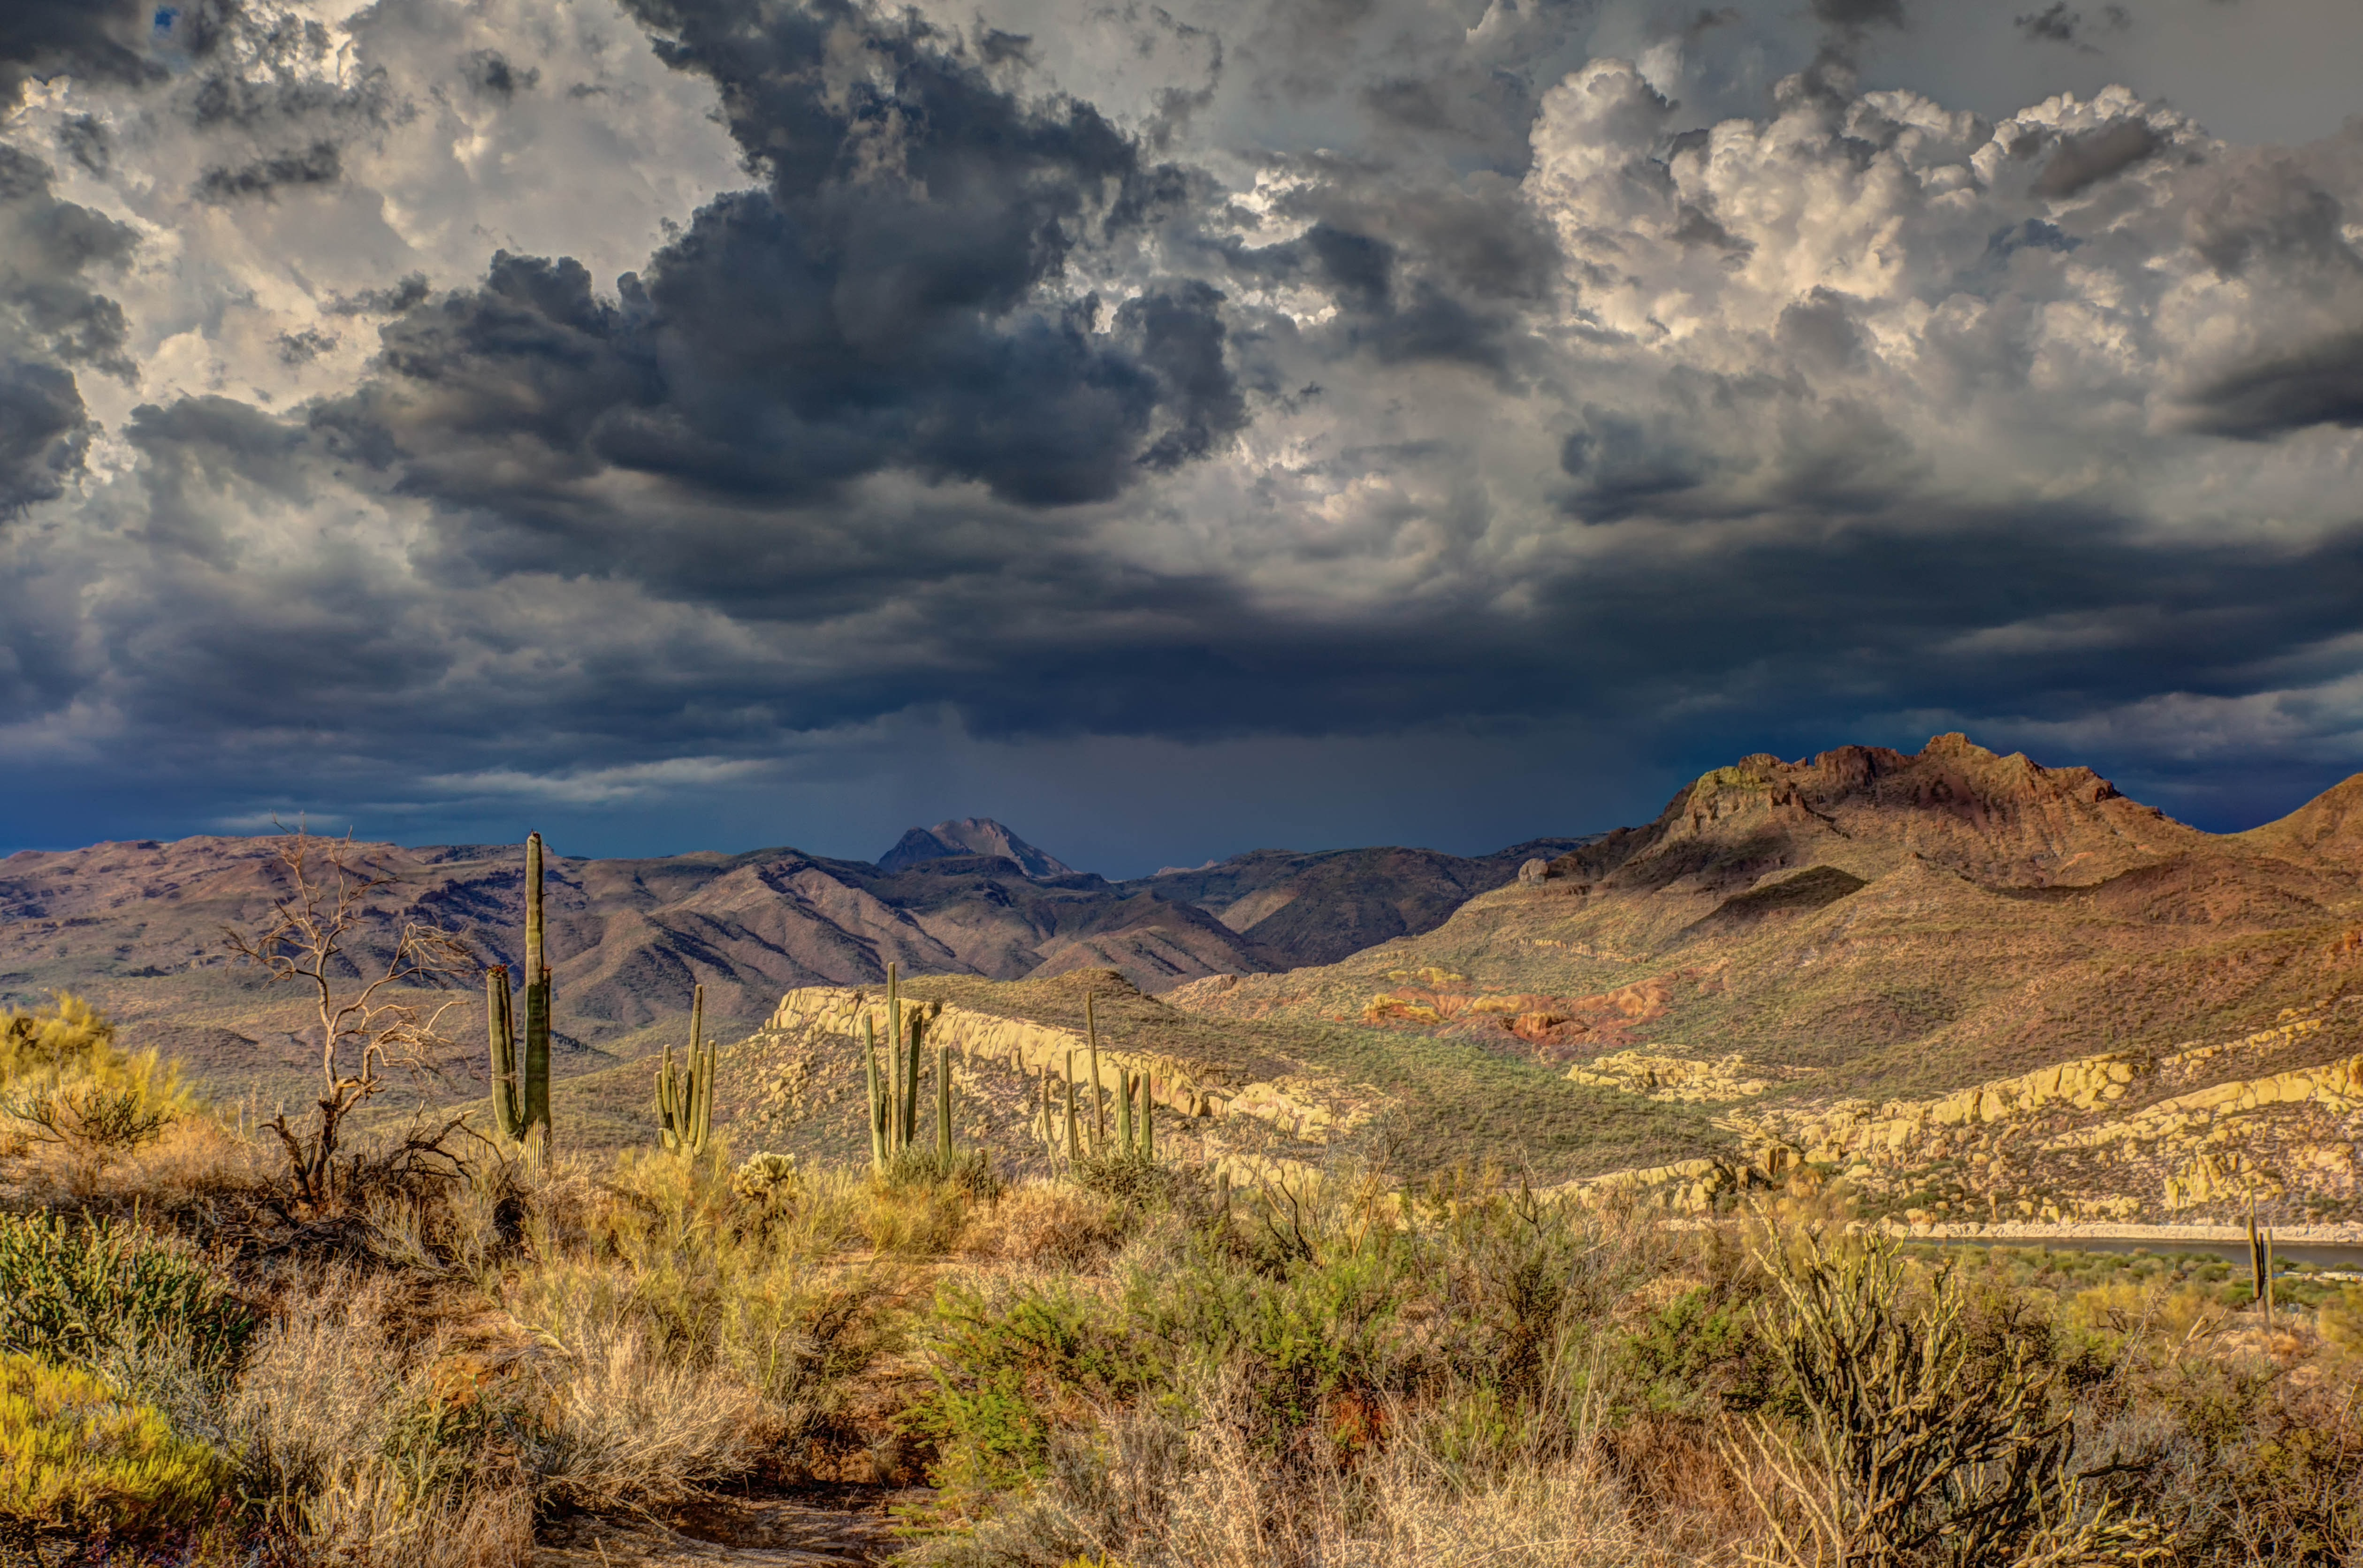 Cacti in the desert and mountains in Arizona